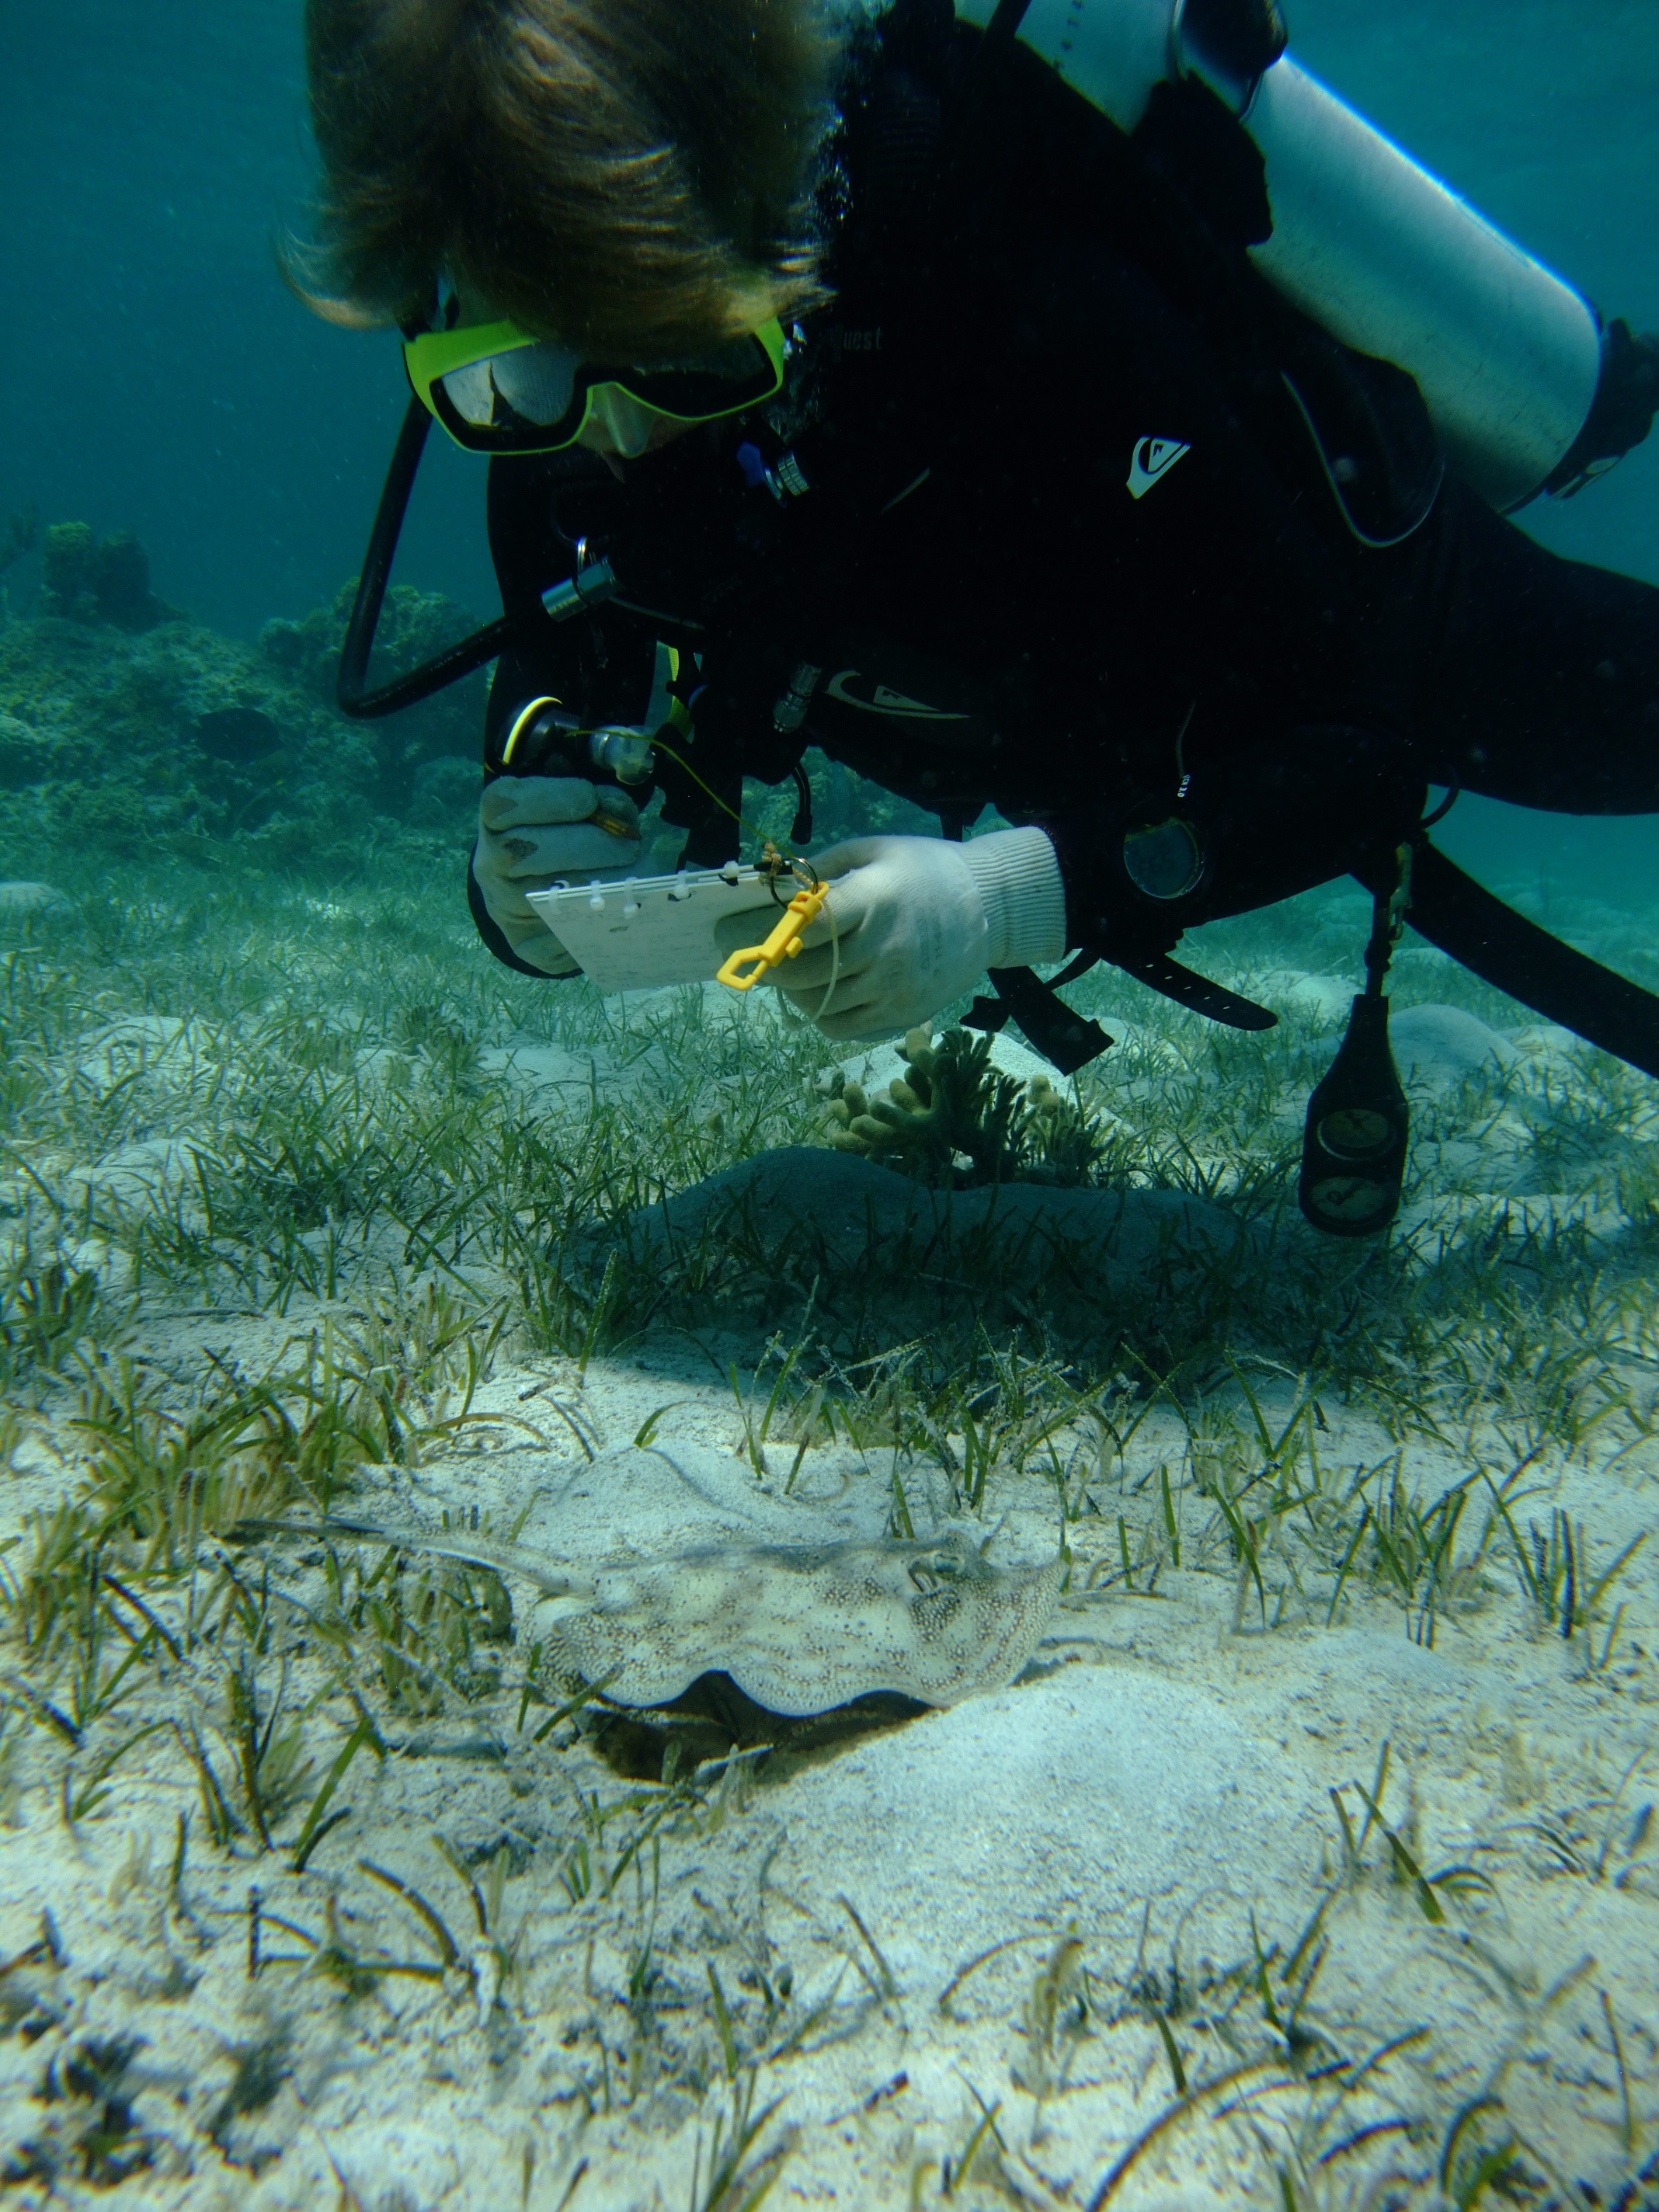 SFU undergraduate researcher Sev counts yellow stingrays on a patch reef.